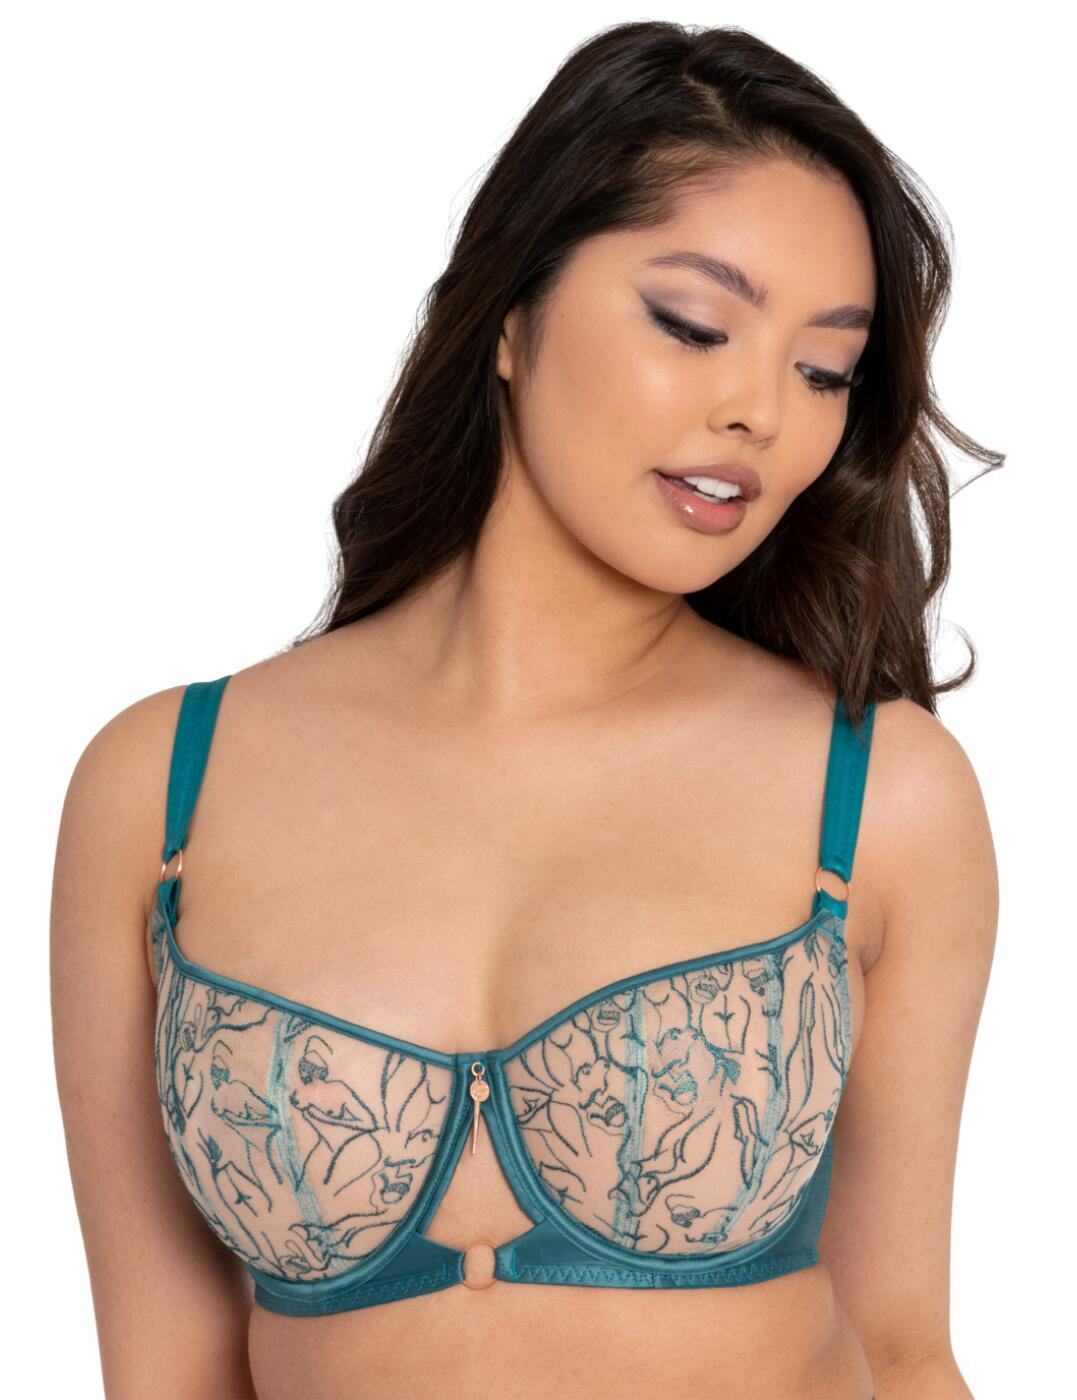 ST014105 Scantilly by Curvy Kate Education Balcony Bra  - ST014105 Teal